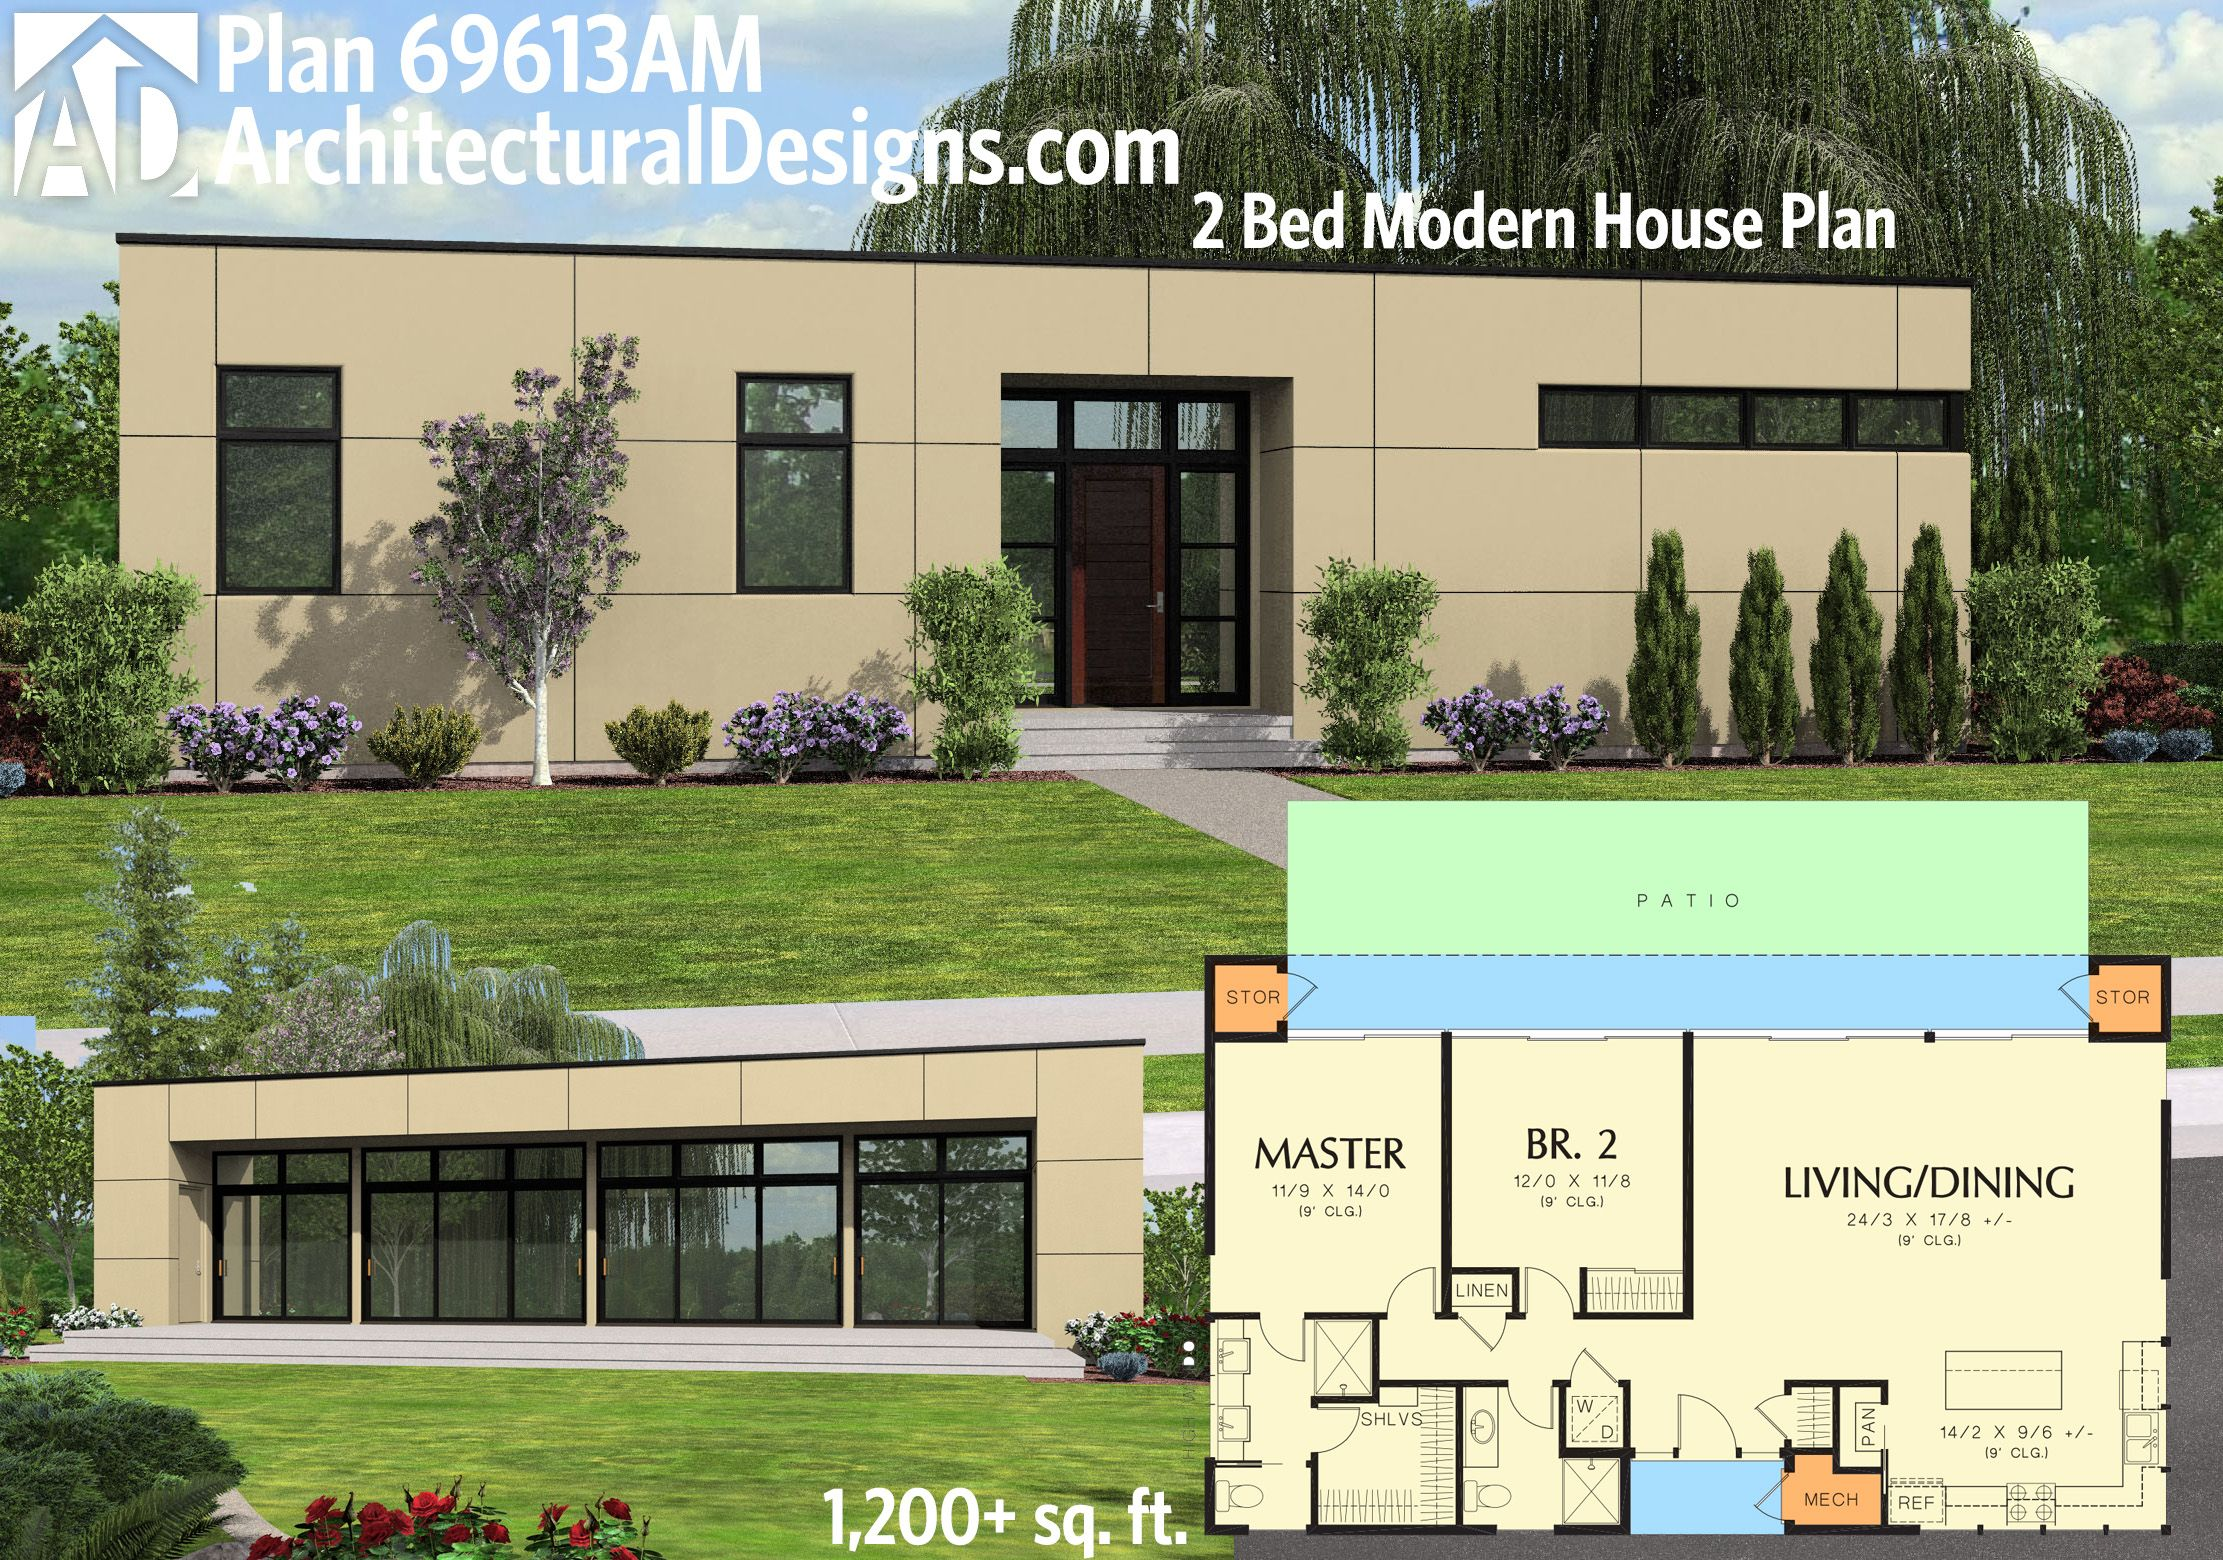 Amazing Architectural Designs 2BR Modern House Plan 69613AM. First Sold To A Client  In Maine.